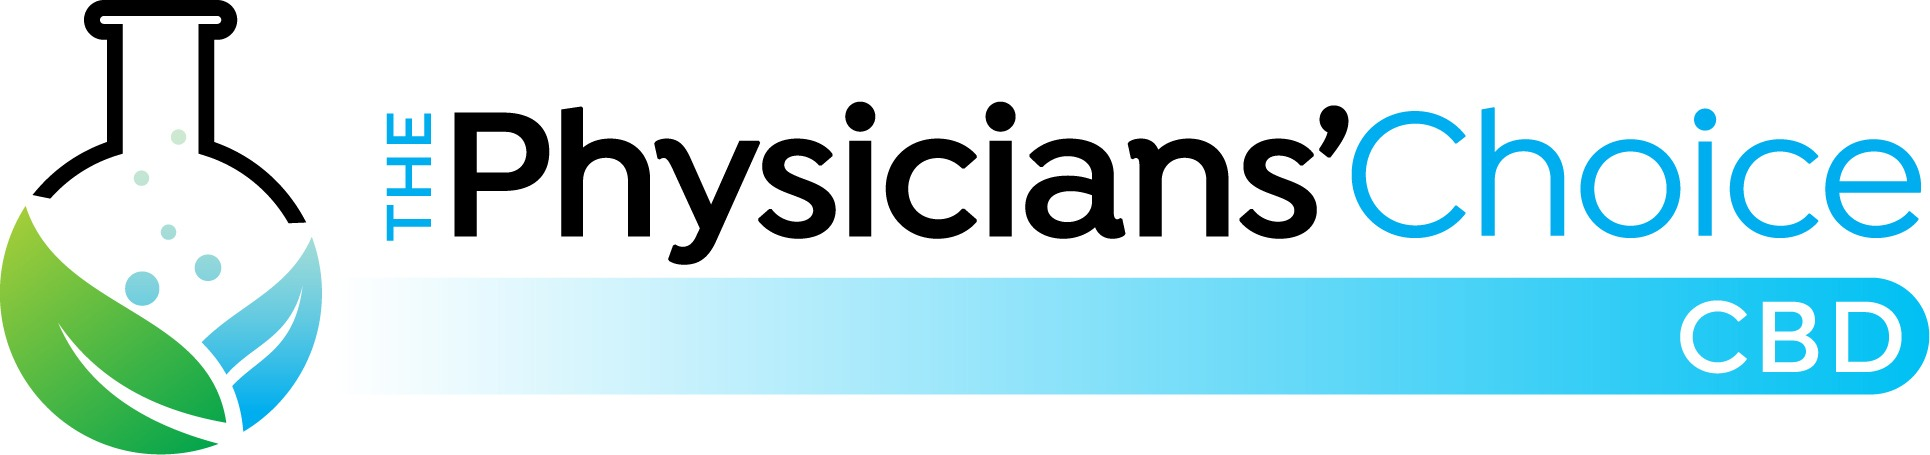 https://pccbd.com/wp-content/uploads/2019/08/the-physicians-choice-logo-full-color-rgb.jpg